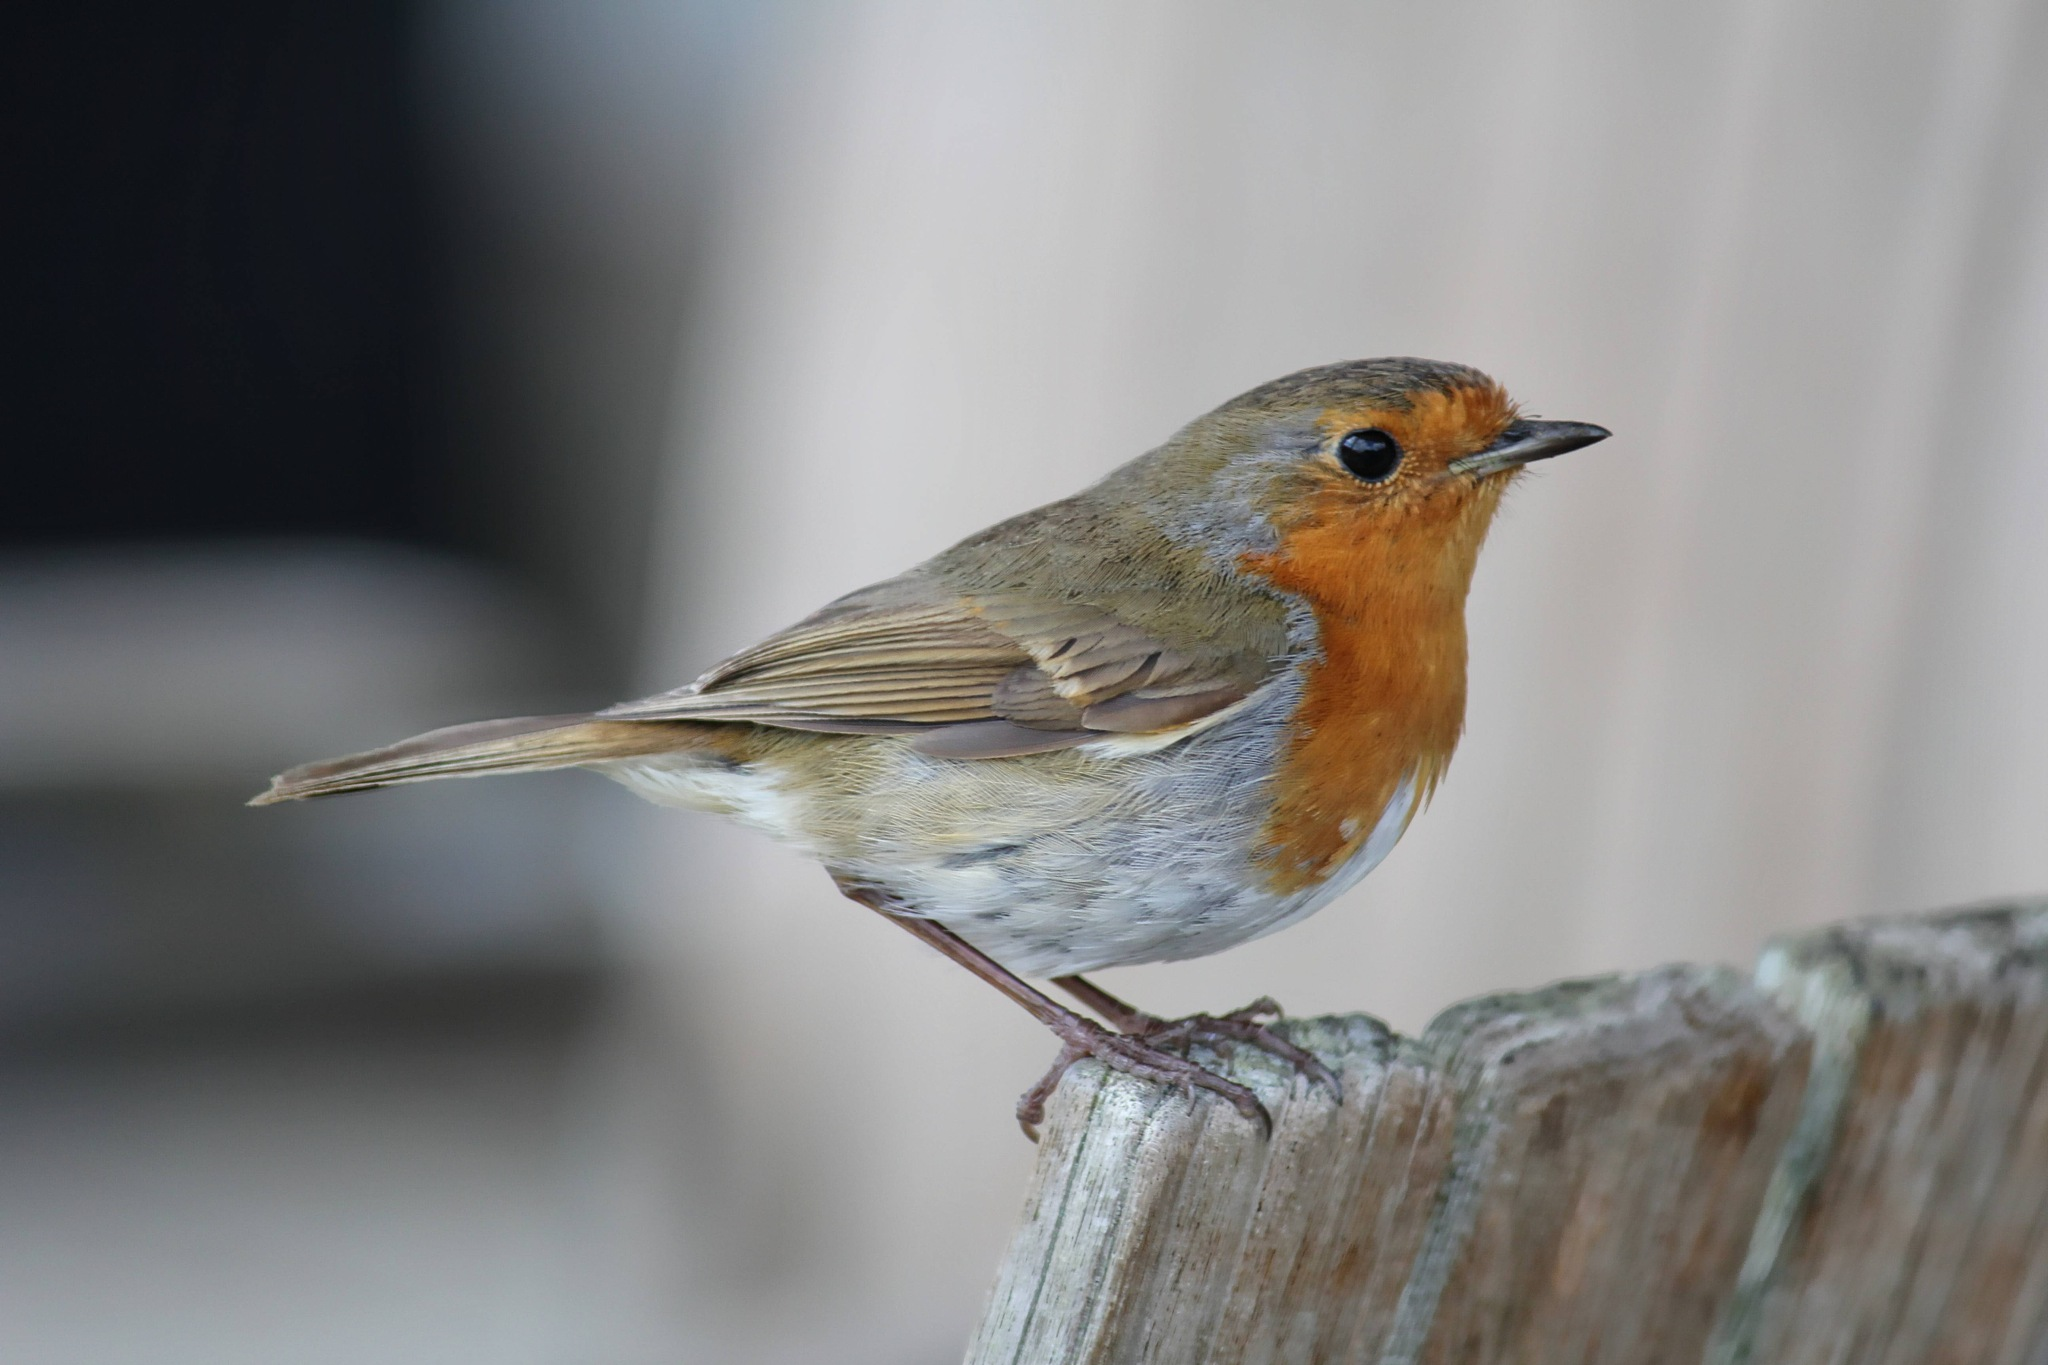 Robin at the Eden Project by Paul Gast